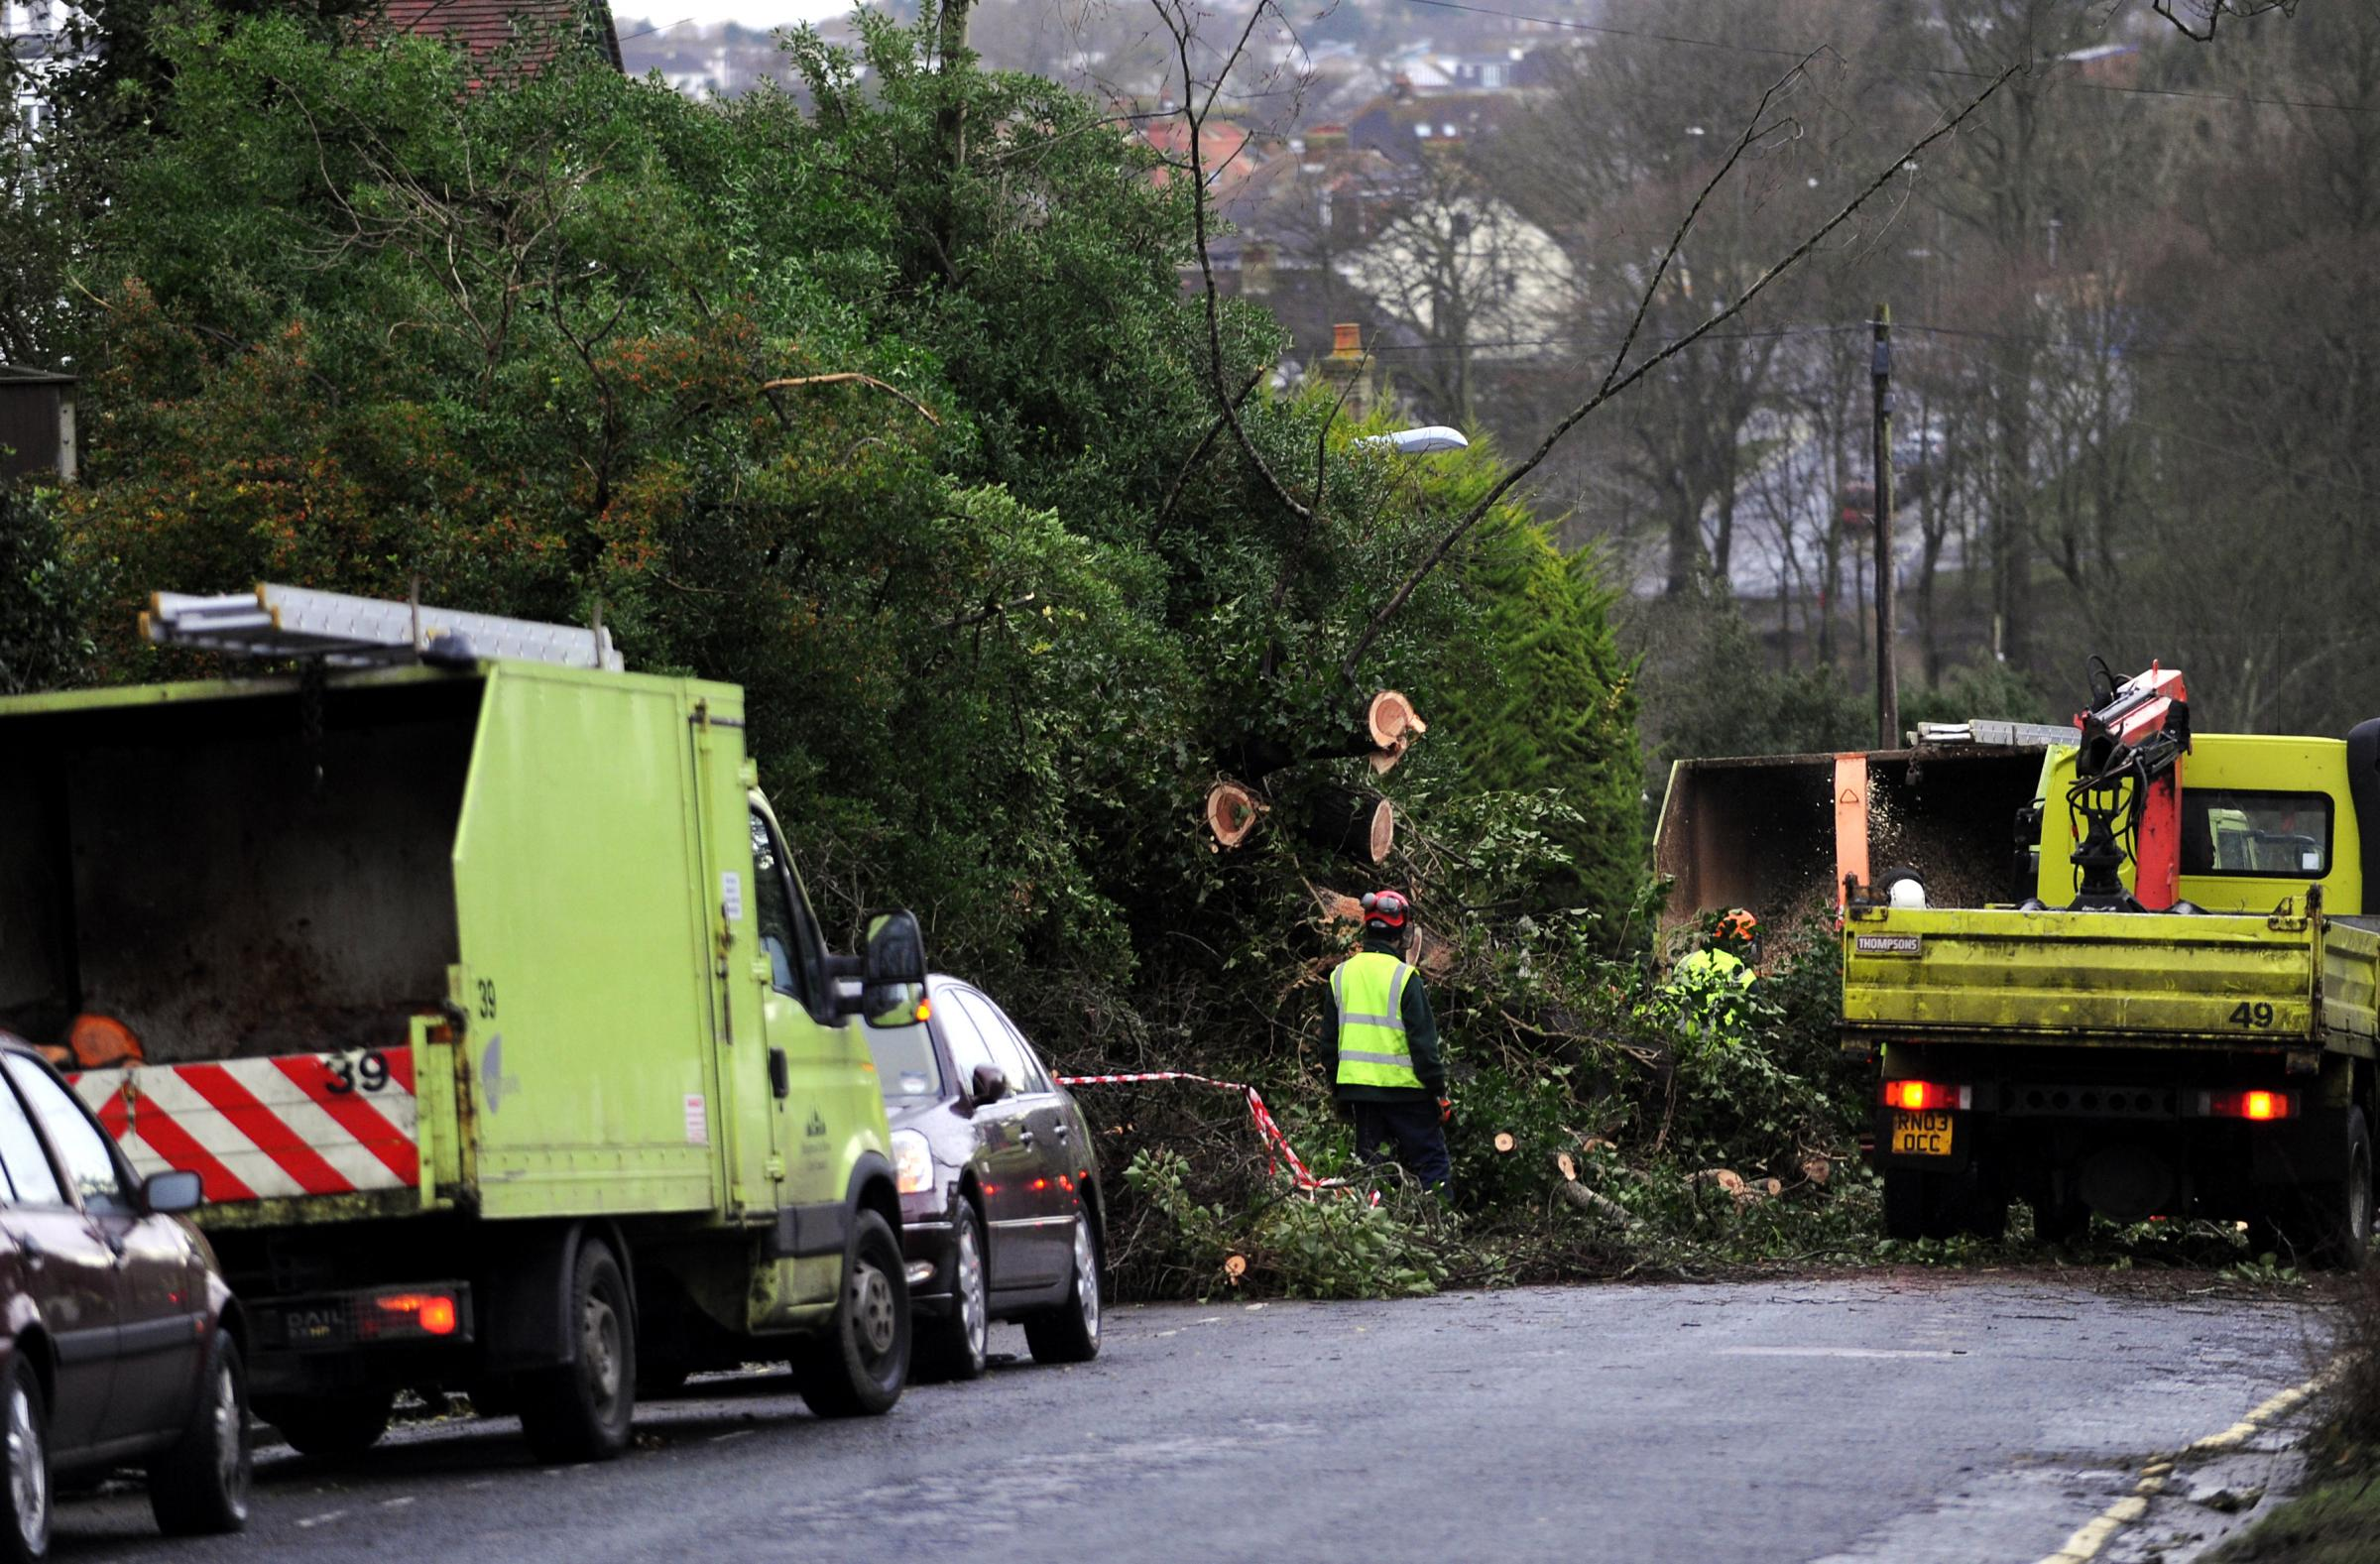 Strong gusts yesterday morning brought down a large tree in Hove Park Road